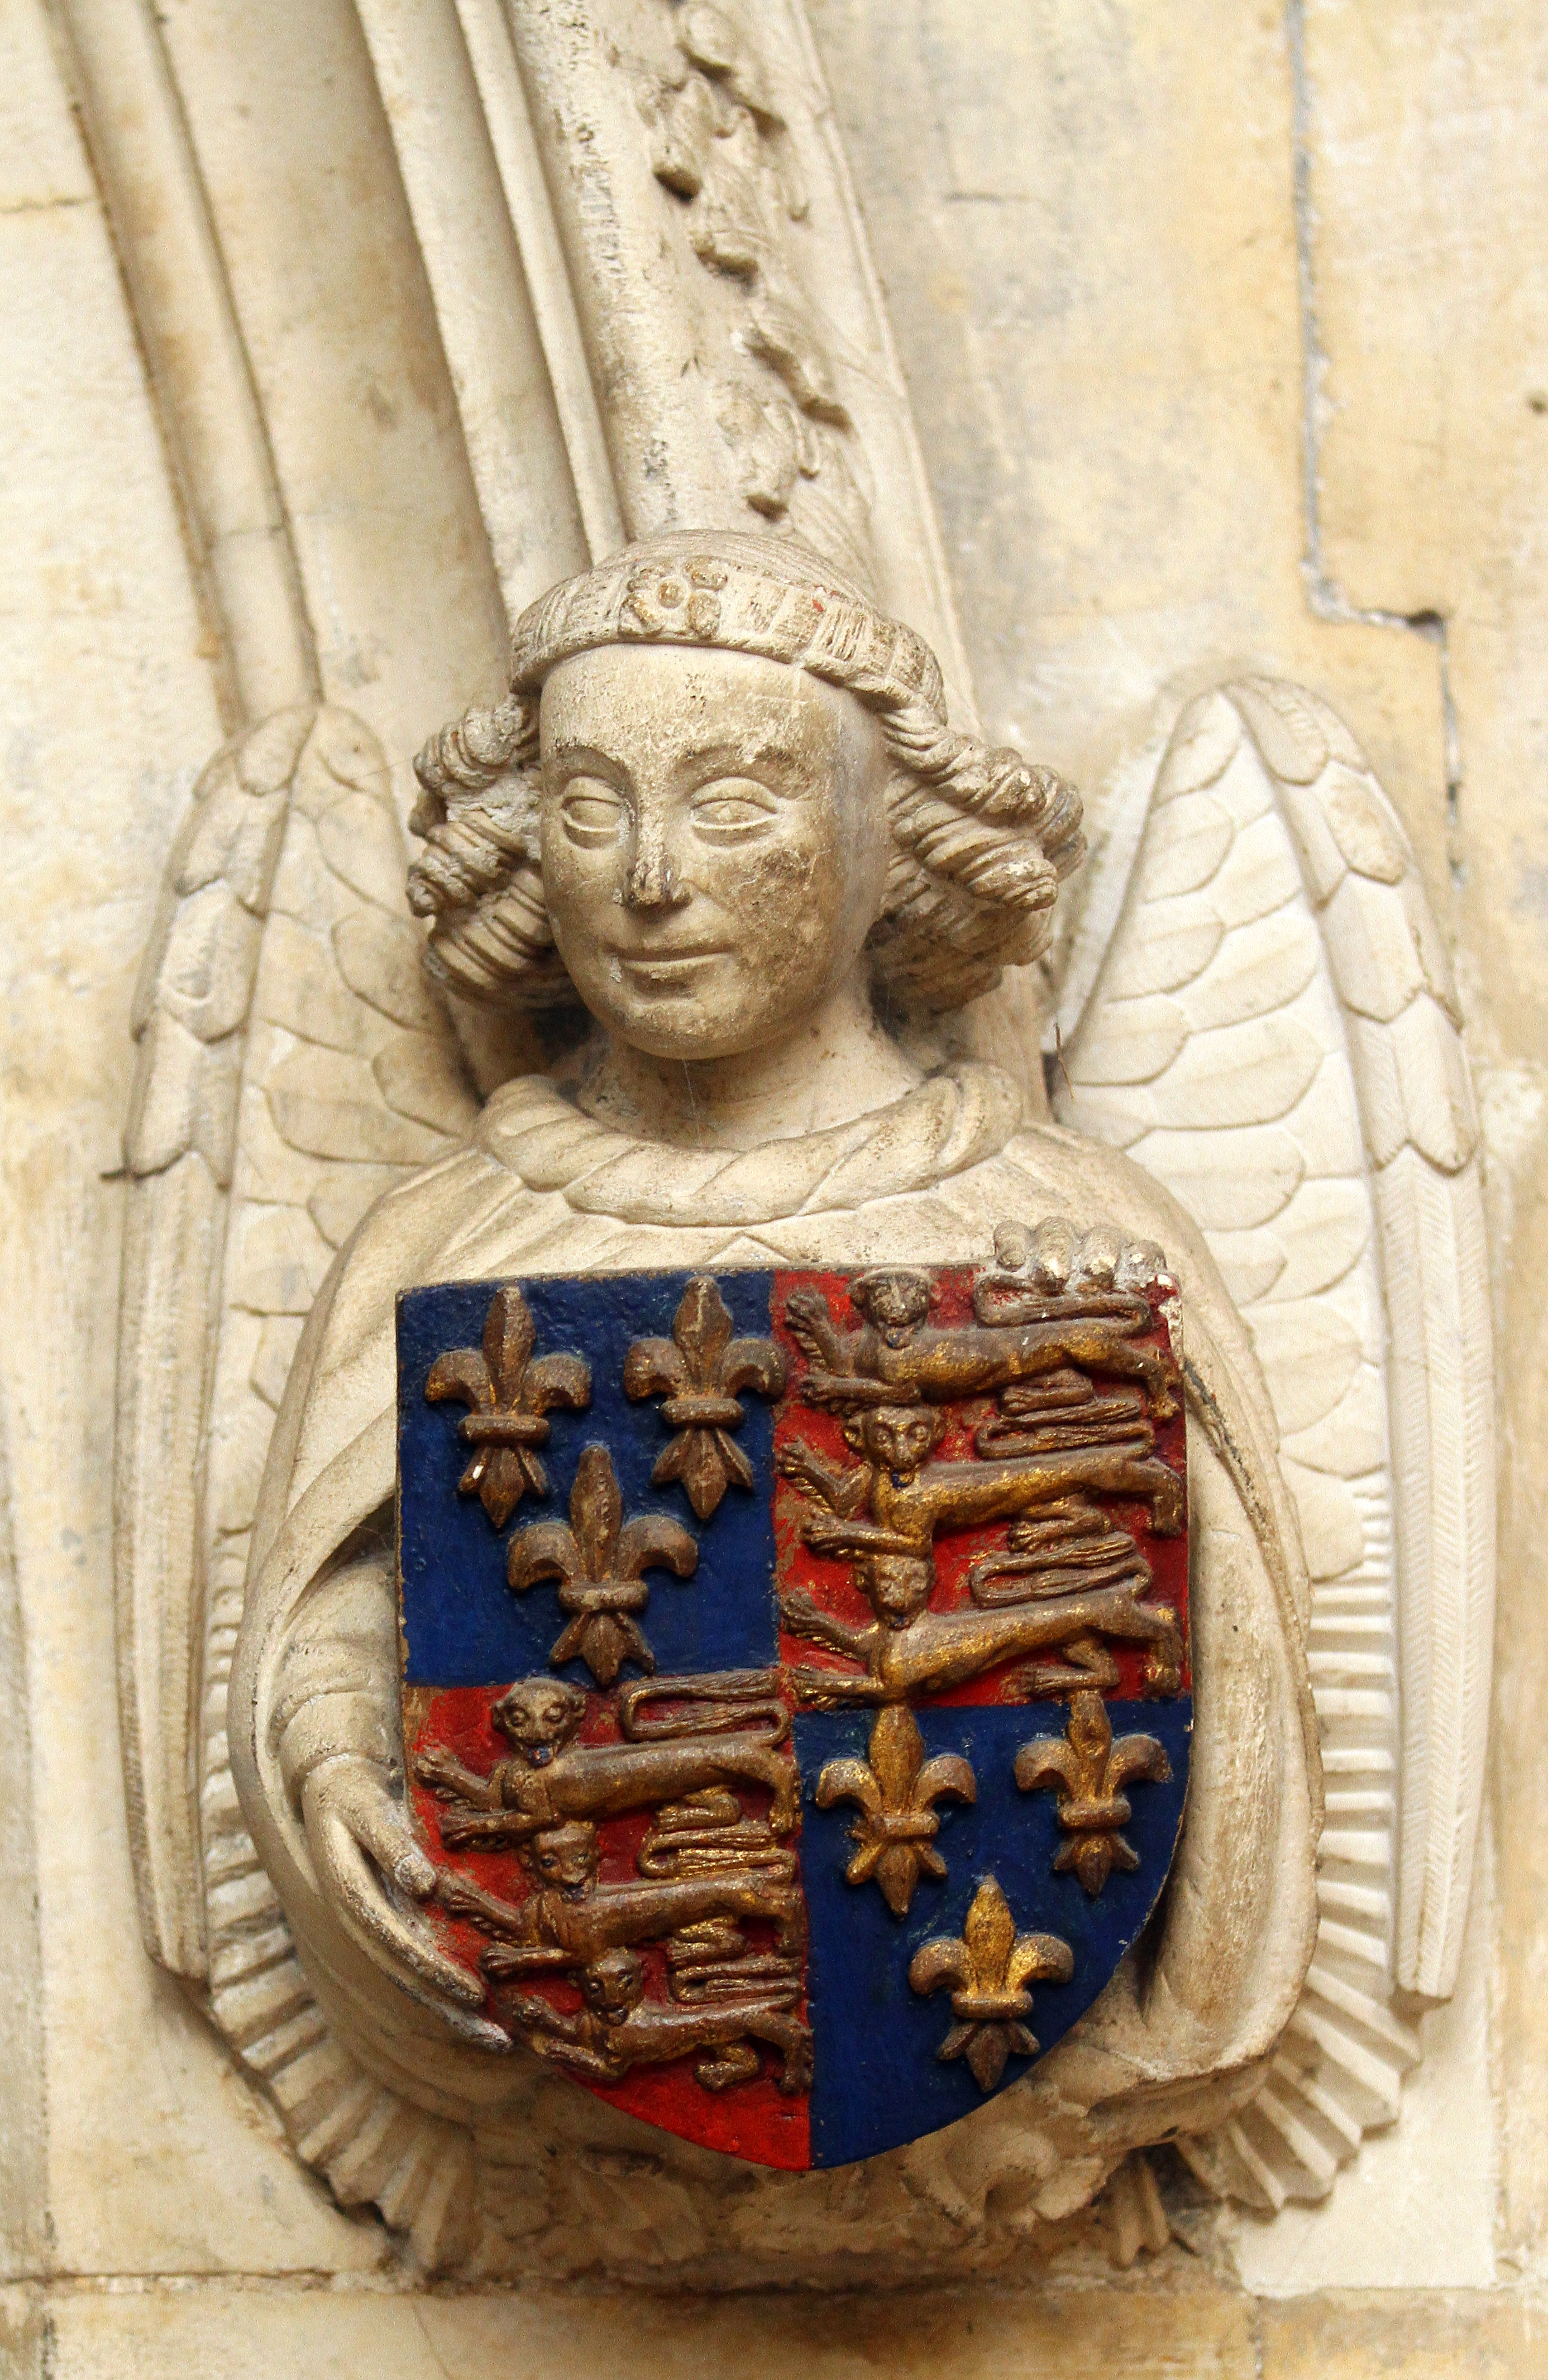 Royal arms borne by an angel by the north Choir doorway. Photograph © Mike Dixon 2011 King's College, Cambridge [CMR/250, IMG_5497]